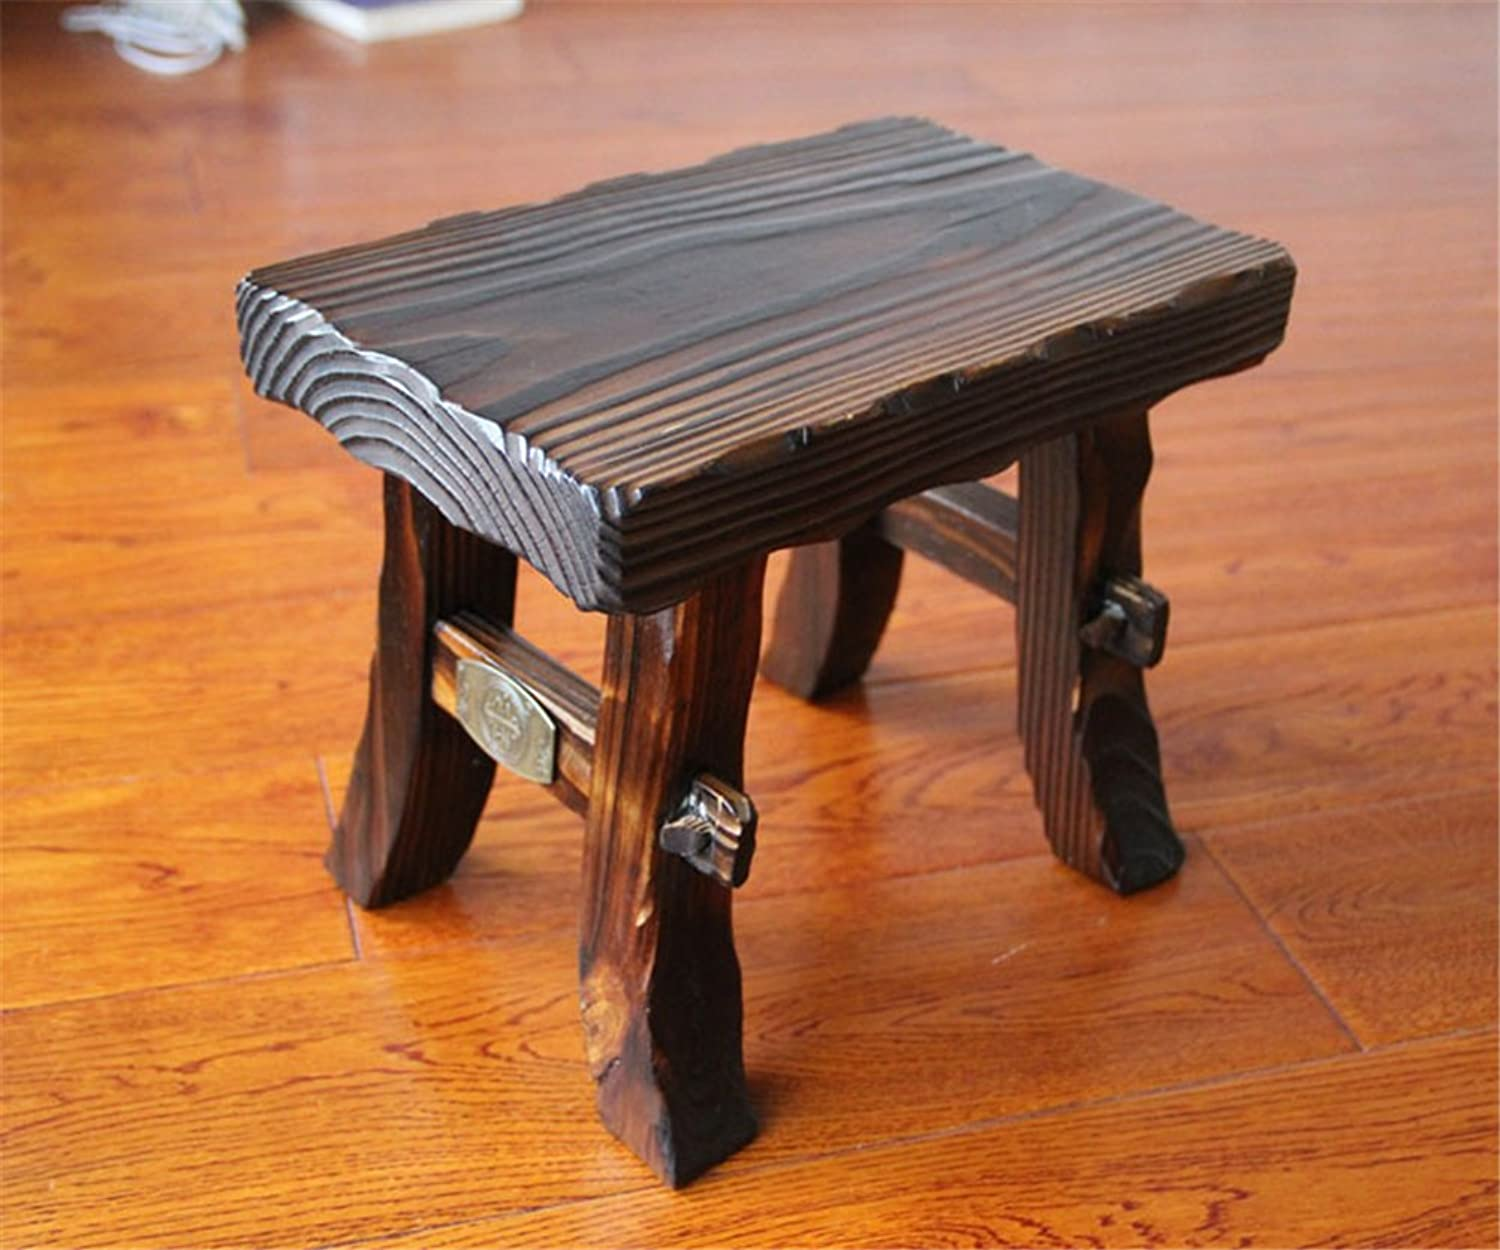 Household Solid Multifunctional Wooden Kids Adult Square Stool Anticorrosive, Retro Wood color,1